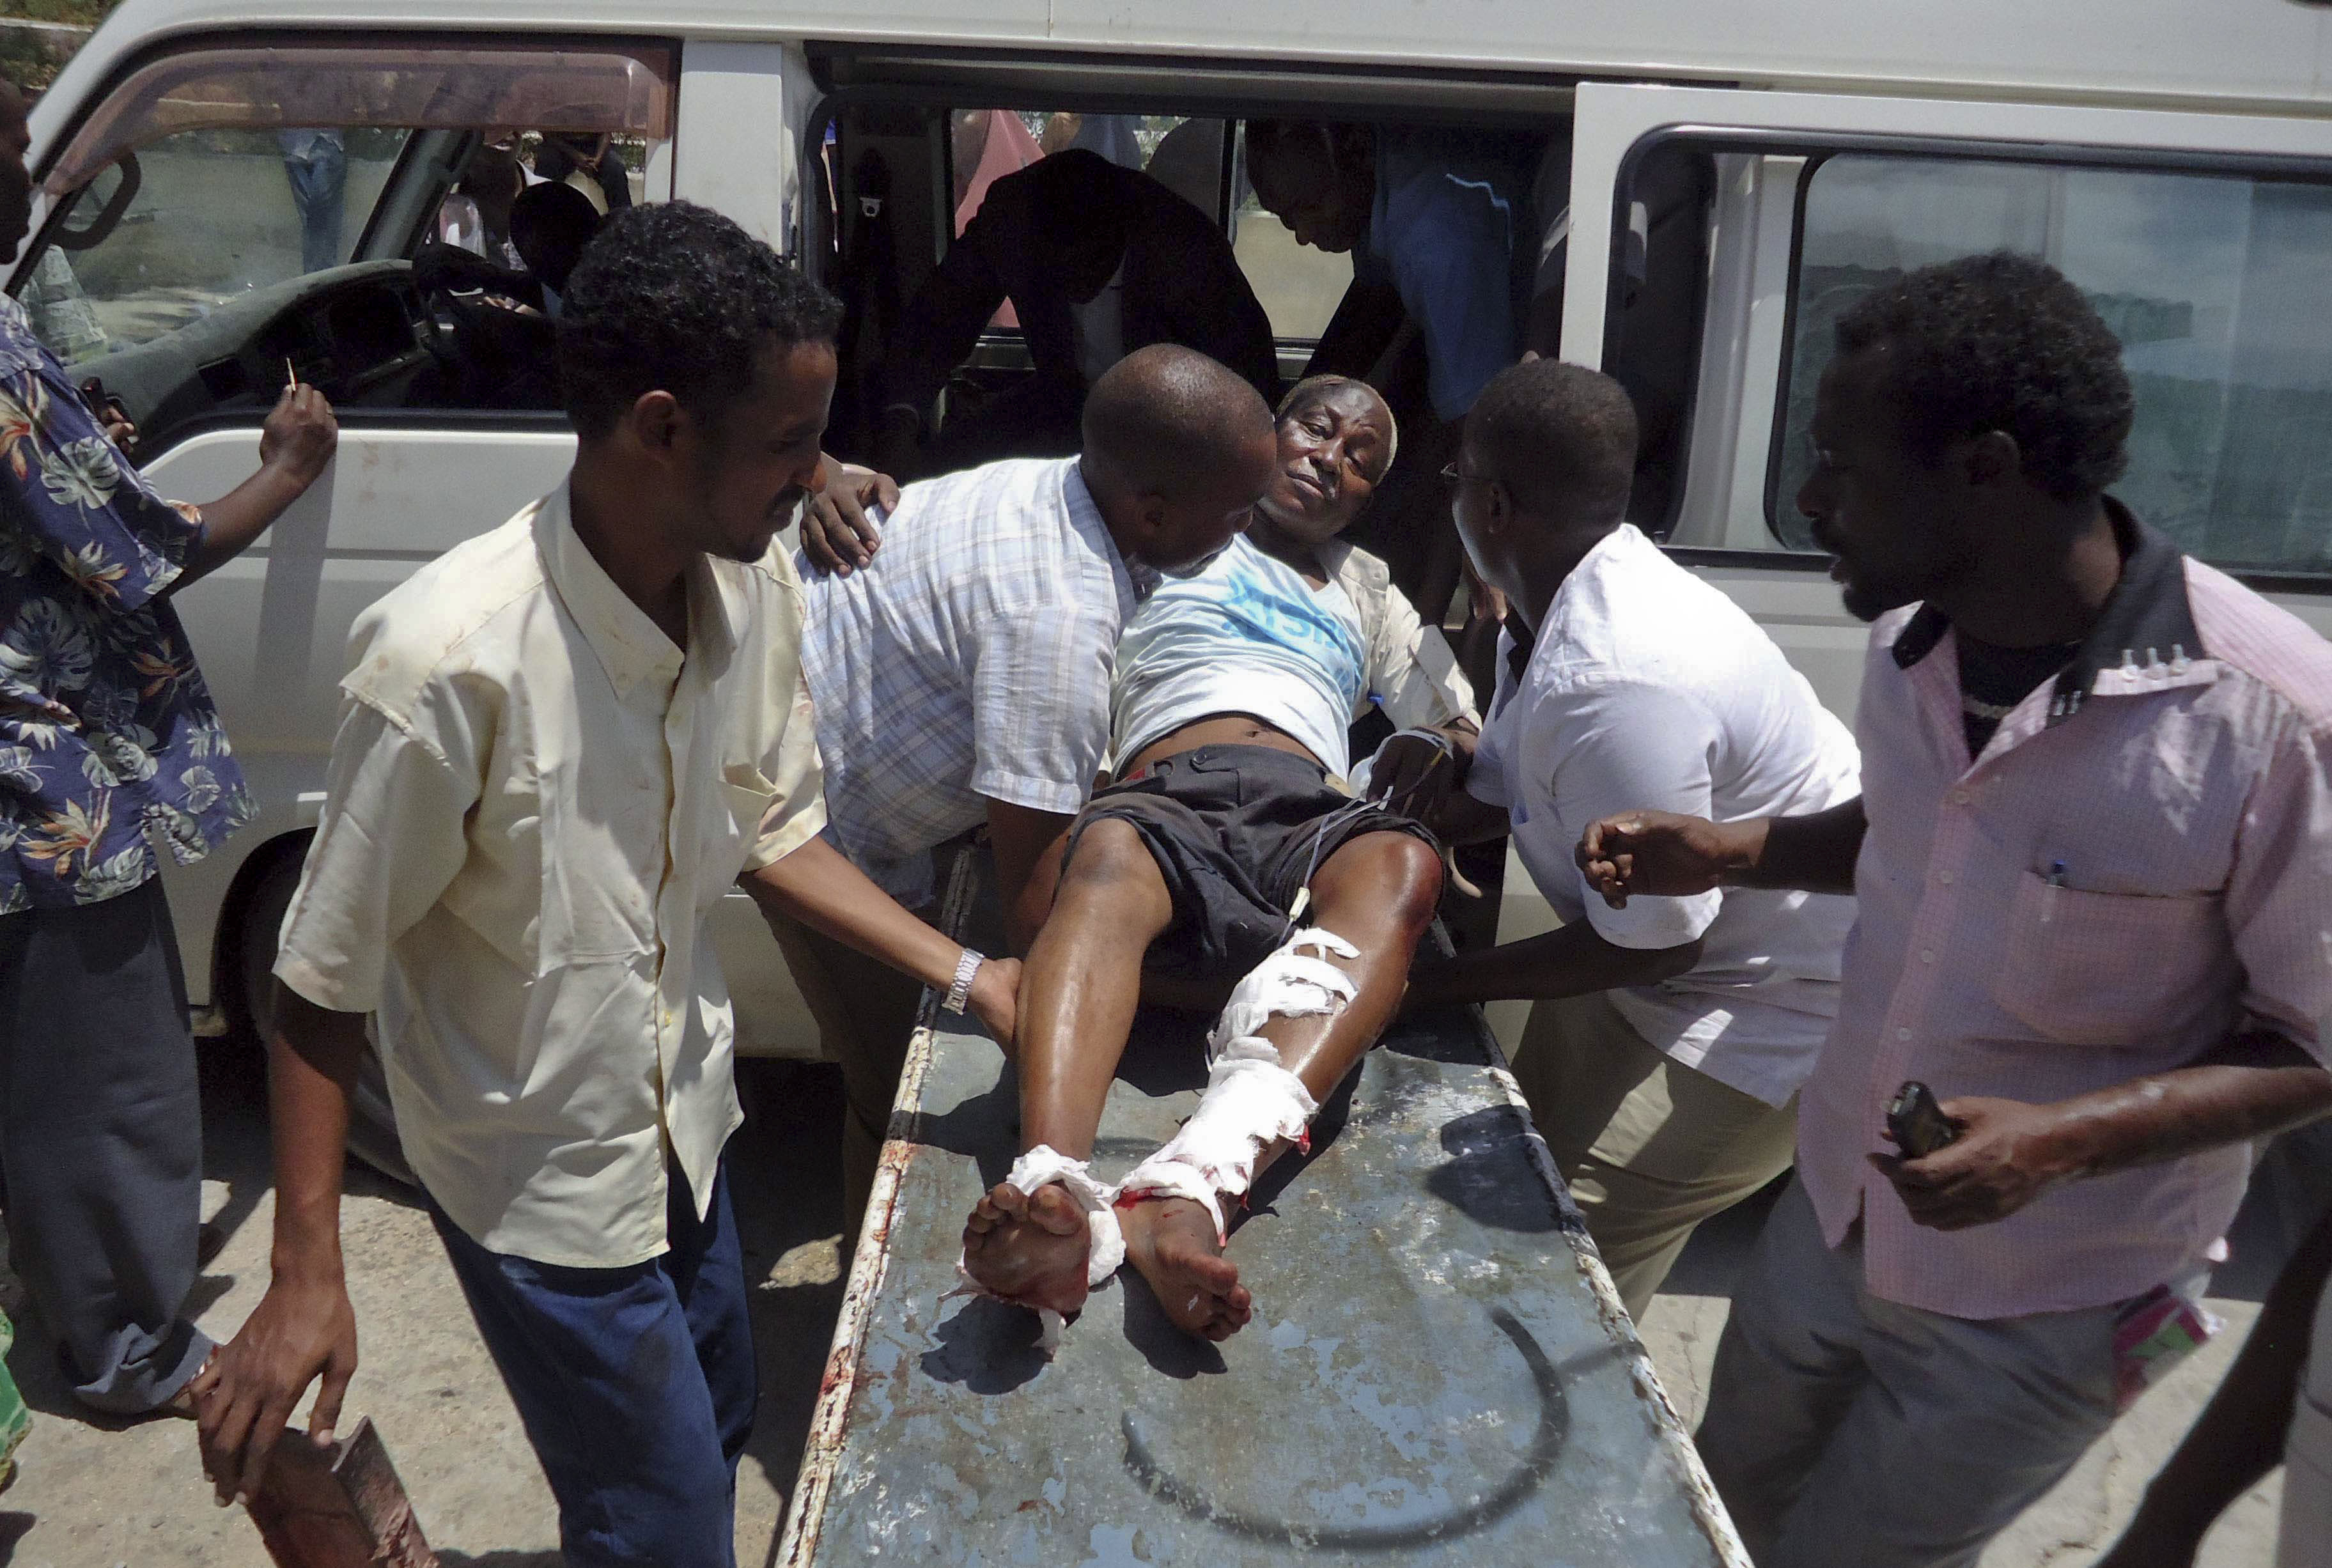 Medical personnel help a man wounded in a blast at the Somali National Theater in Mogadishu, Somalia Wednesday, April 4, 2012. An explosion Wednesday at a ceremony at Somalia's national theater killed at least 10 people including two top sports officials in an attack by an Islamist group on a site that symbolized the city's attempt to rise from two decades of war. (AP Photo/Farah Abdi Warsameh)